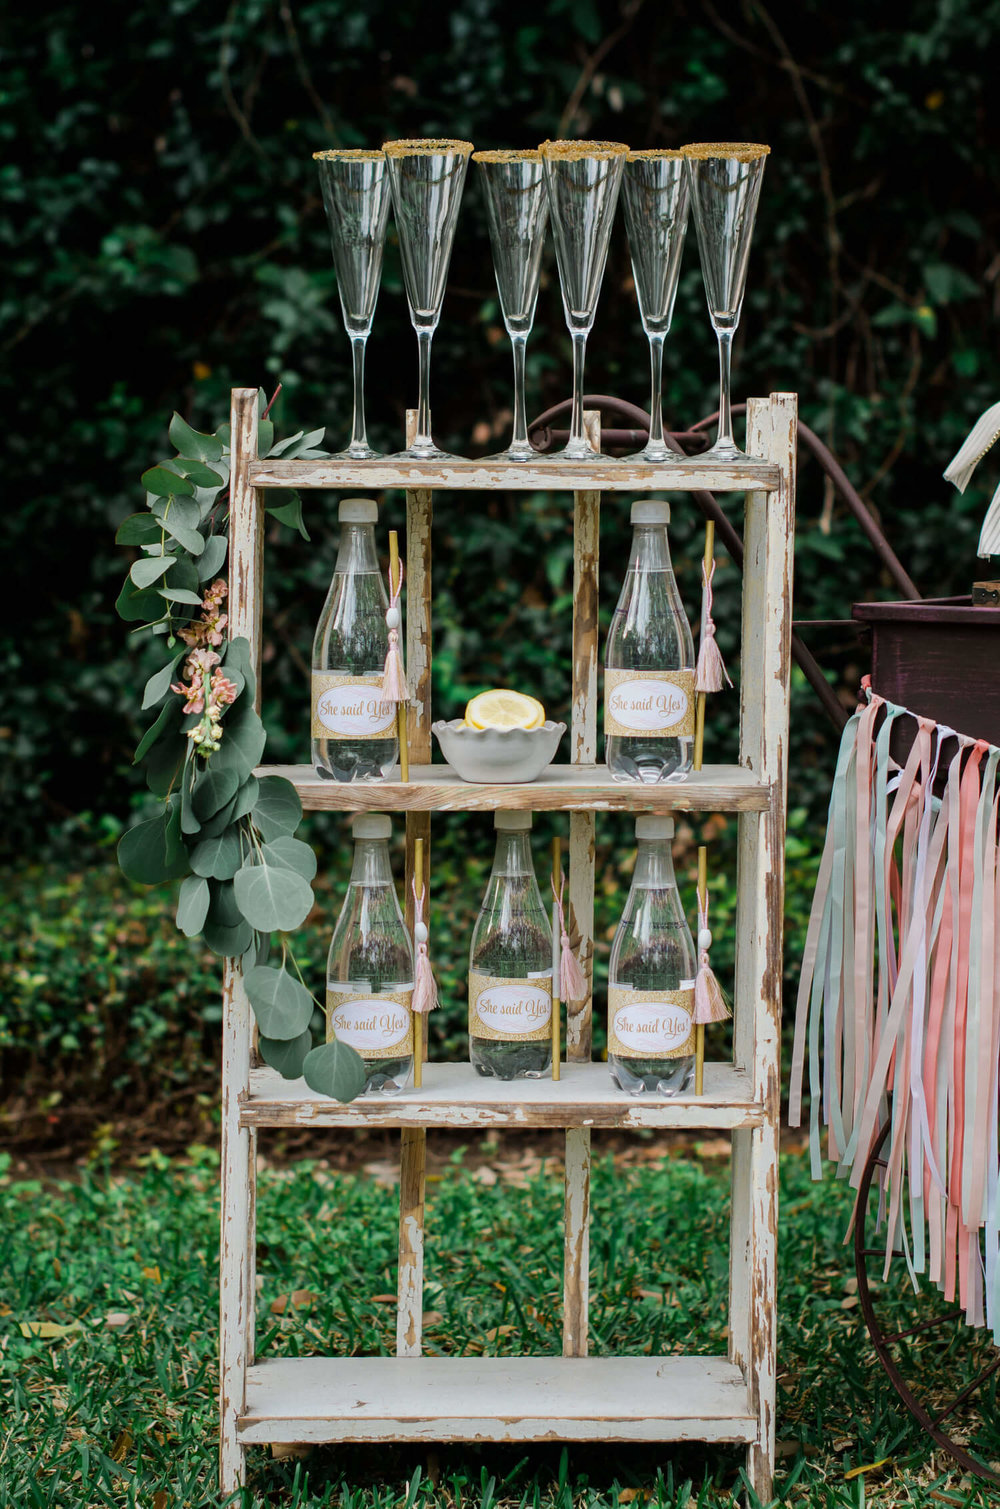 She said yes / Bridal Shower ideas / Shabby Chic Bridal Shower ideas / Mimosa Bar ideas / Bridal Shower Drink Station / Baby shower ideas / Shabby Chic Dessert table / Garden Shower party deas / Style By Carolina from MINT Event Design / www.minteventdesign.com